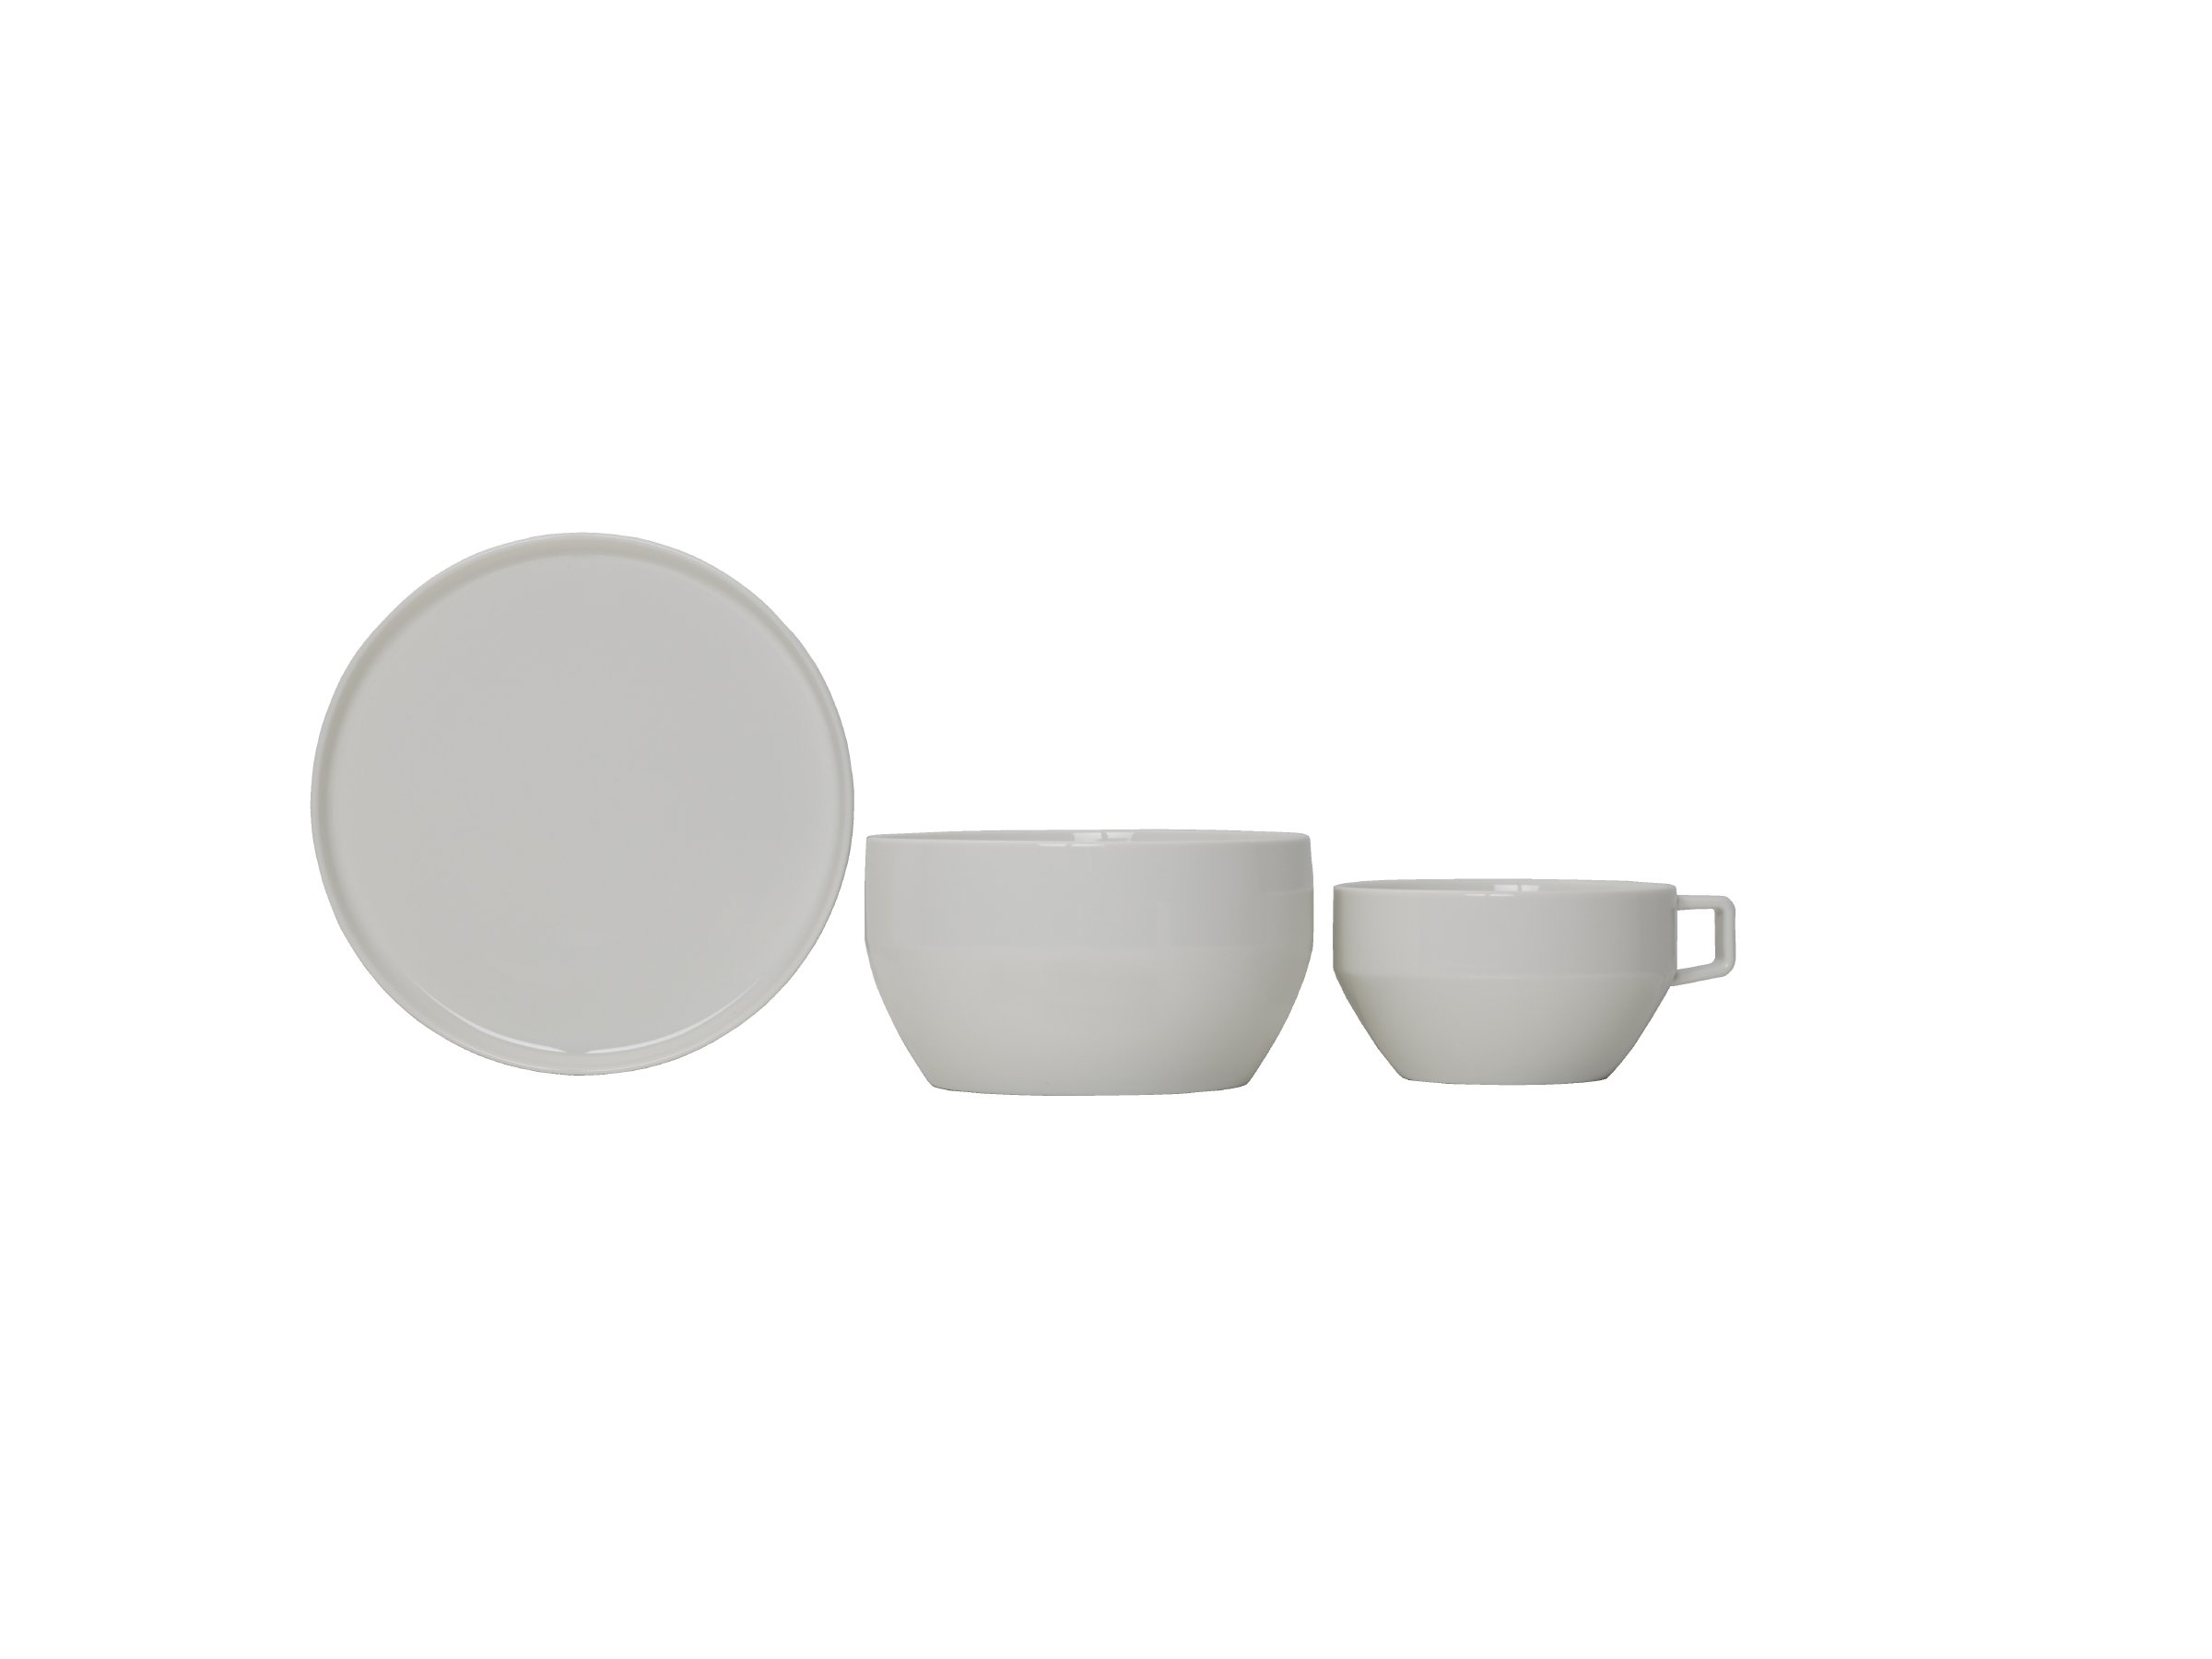 Mikasa Dine3 3-Piece Porcelain Place Setting, White, Service for 1 by Mikasa (Image #4)